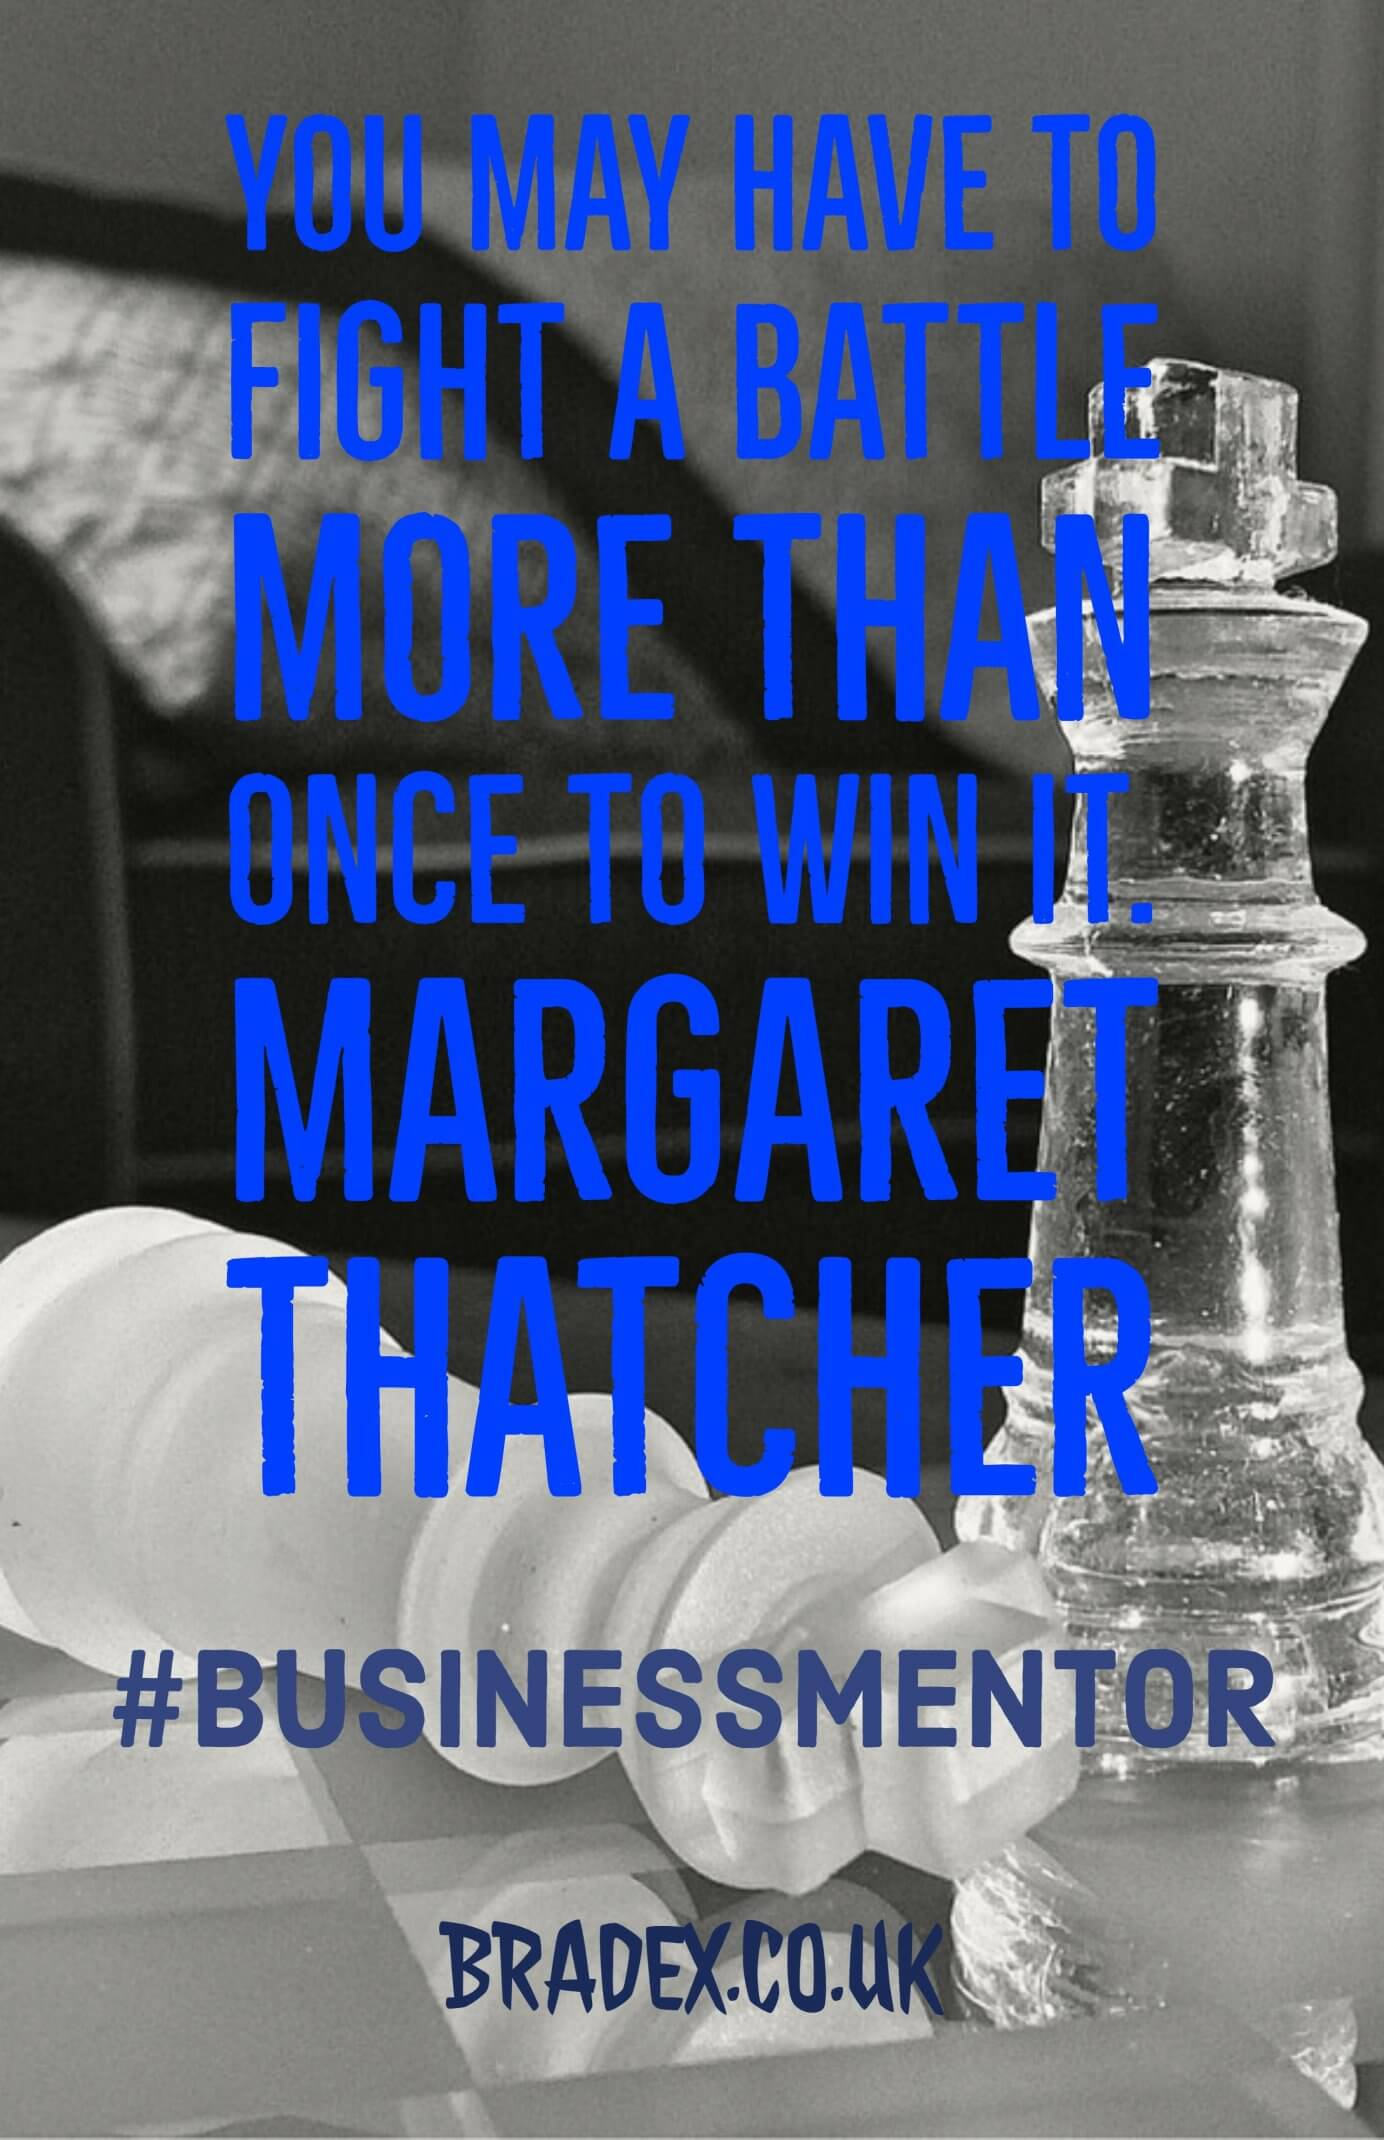 #business mentor battle to win